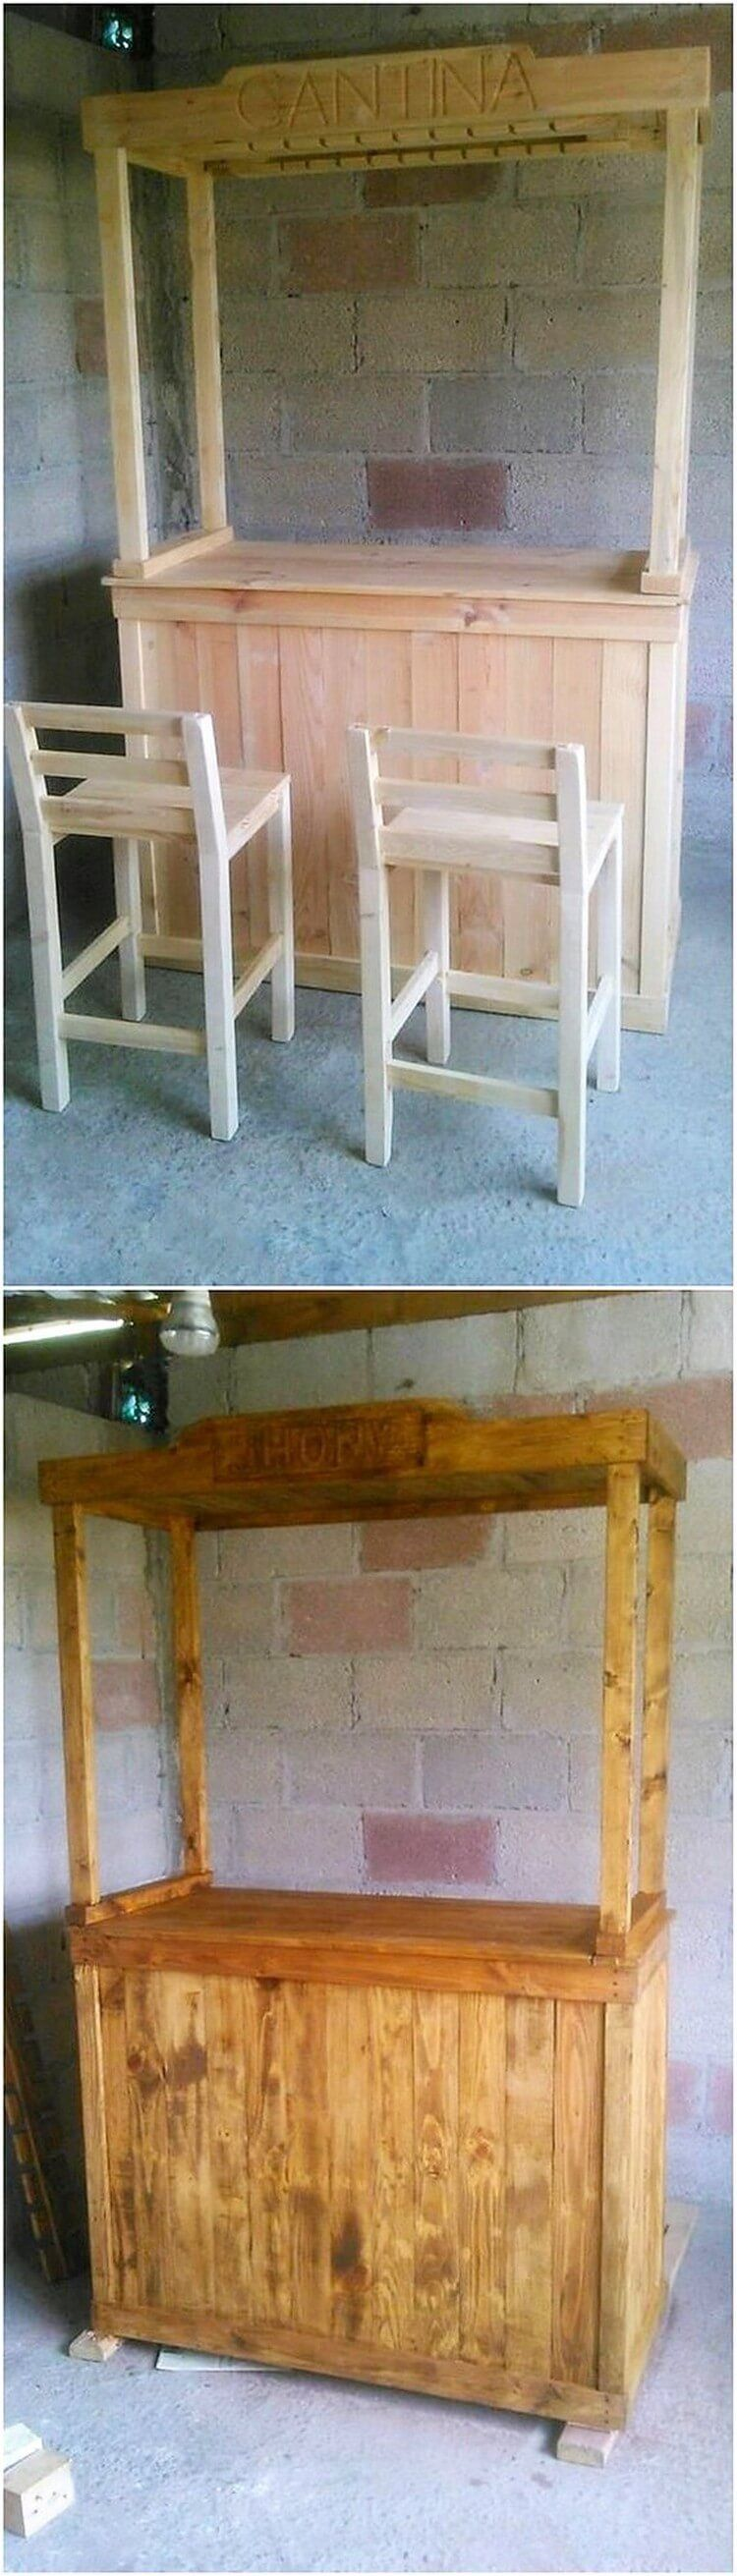 Creative Ideas to Give Wood Pallets Second Chance | Wood pallets ...